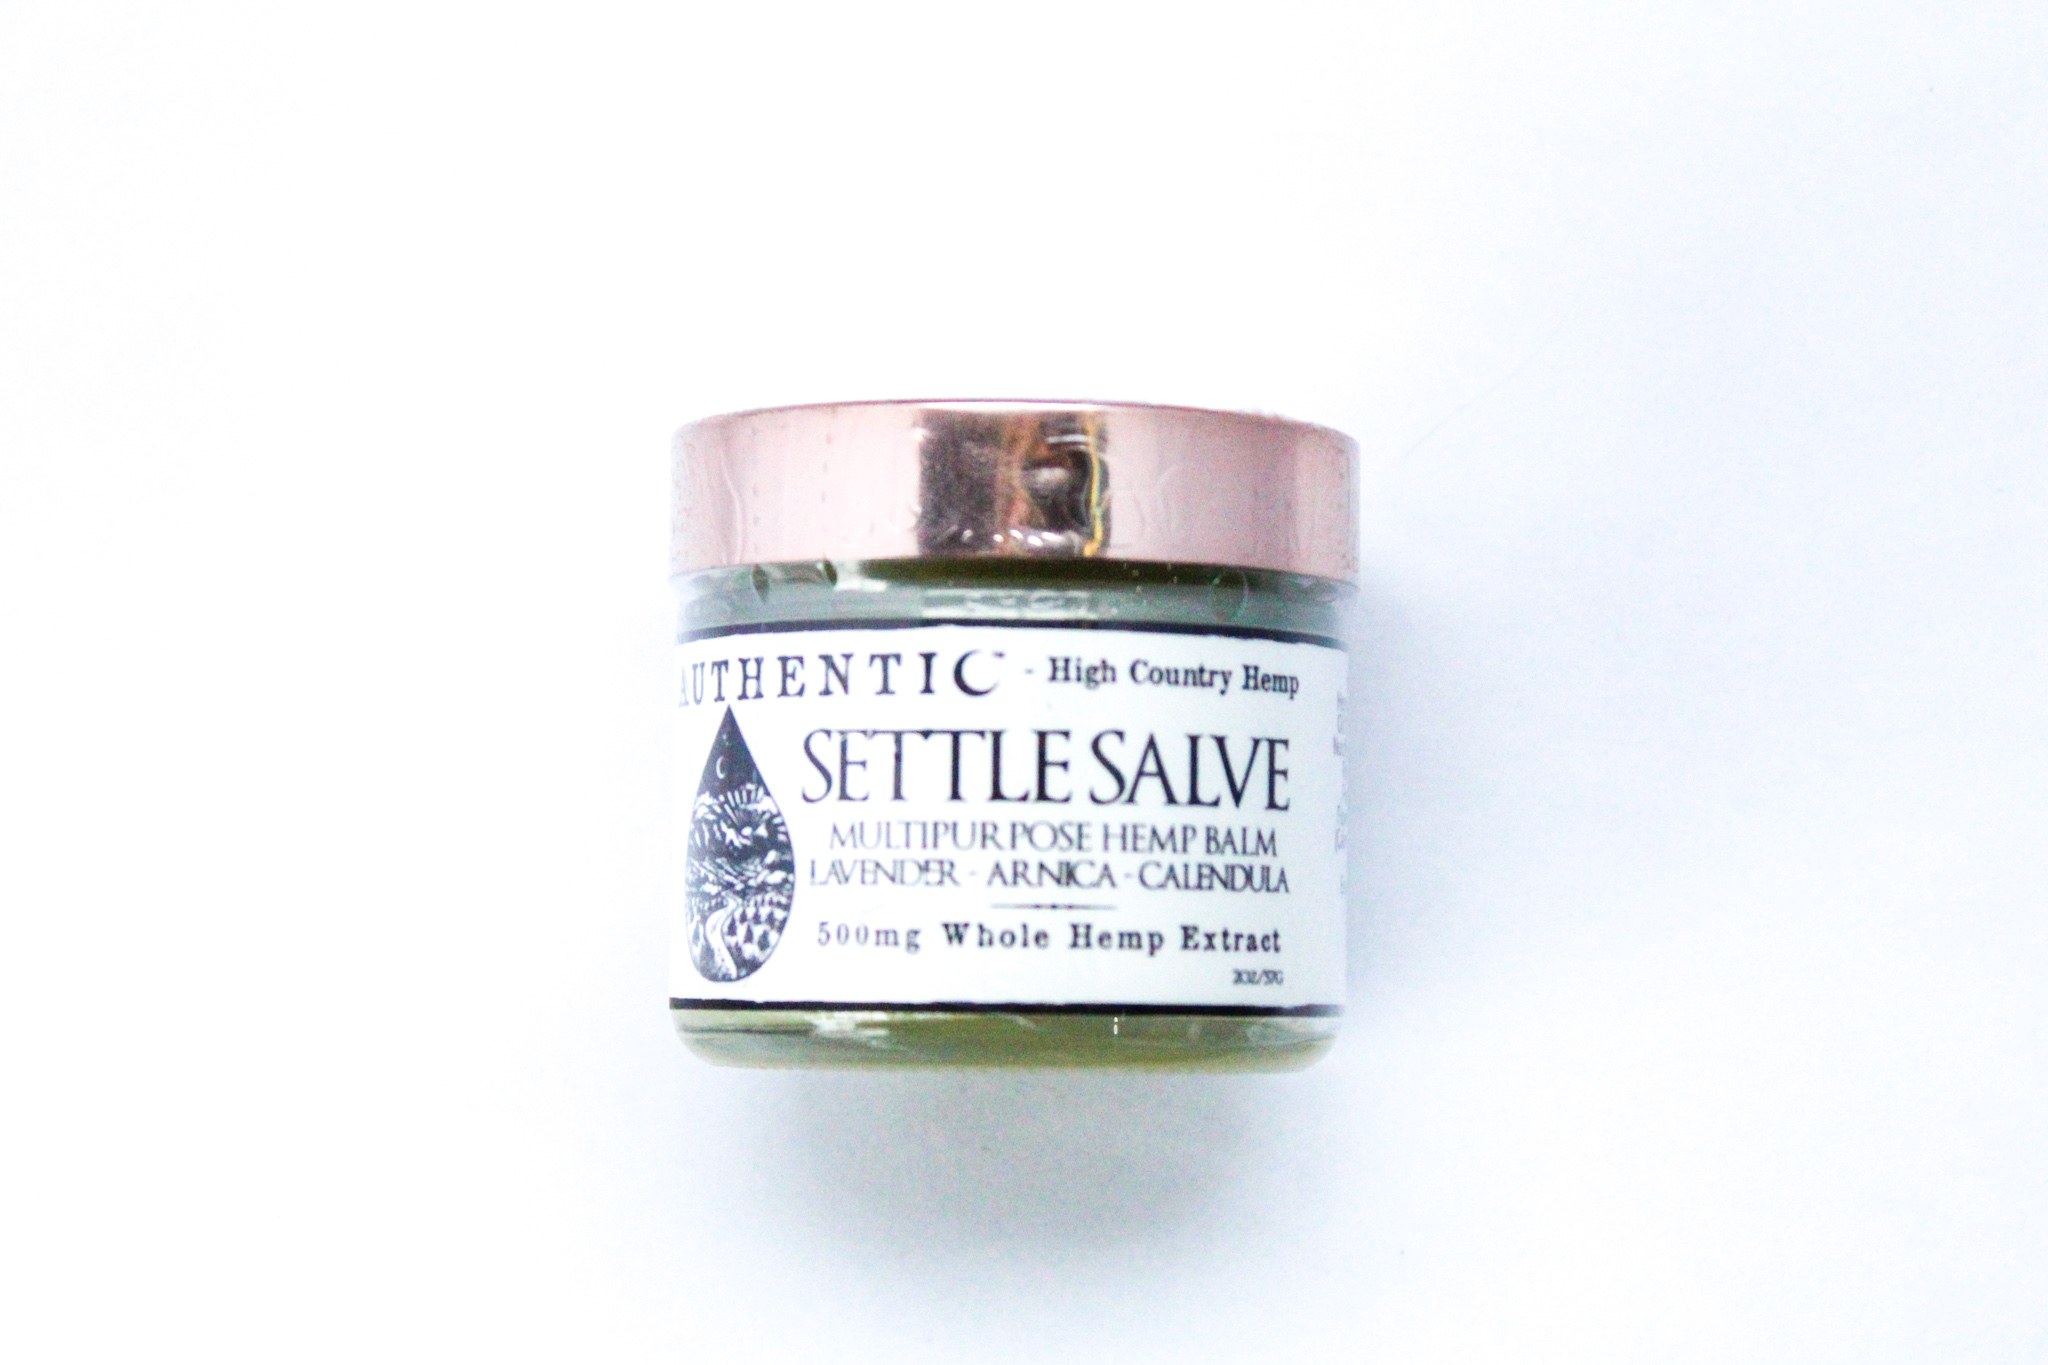 Image of Authentic – Settle Salve